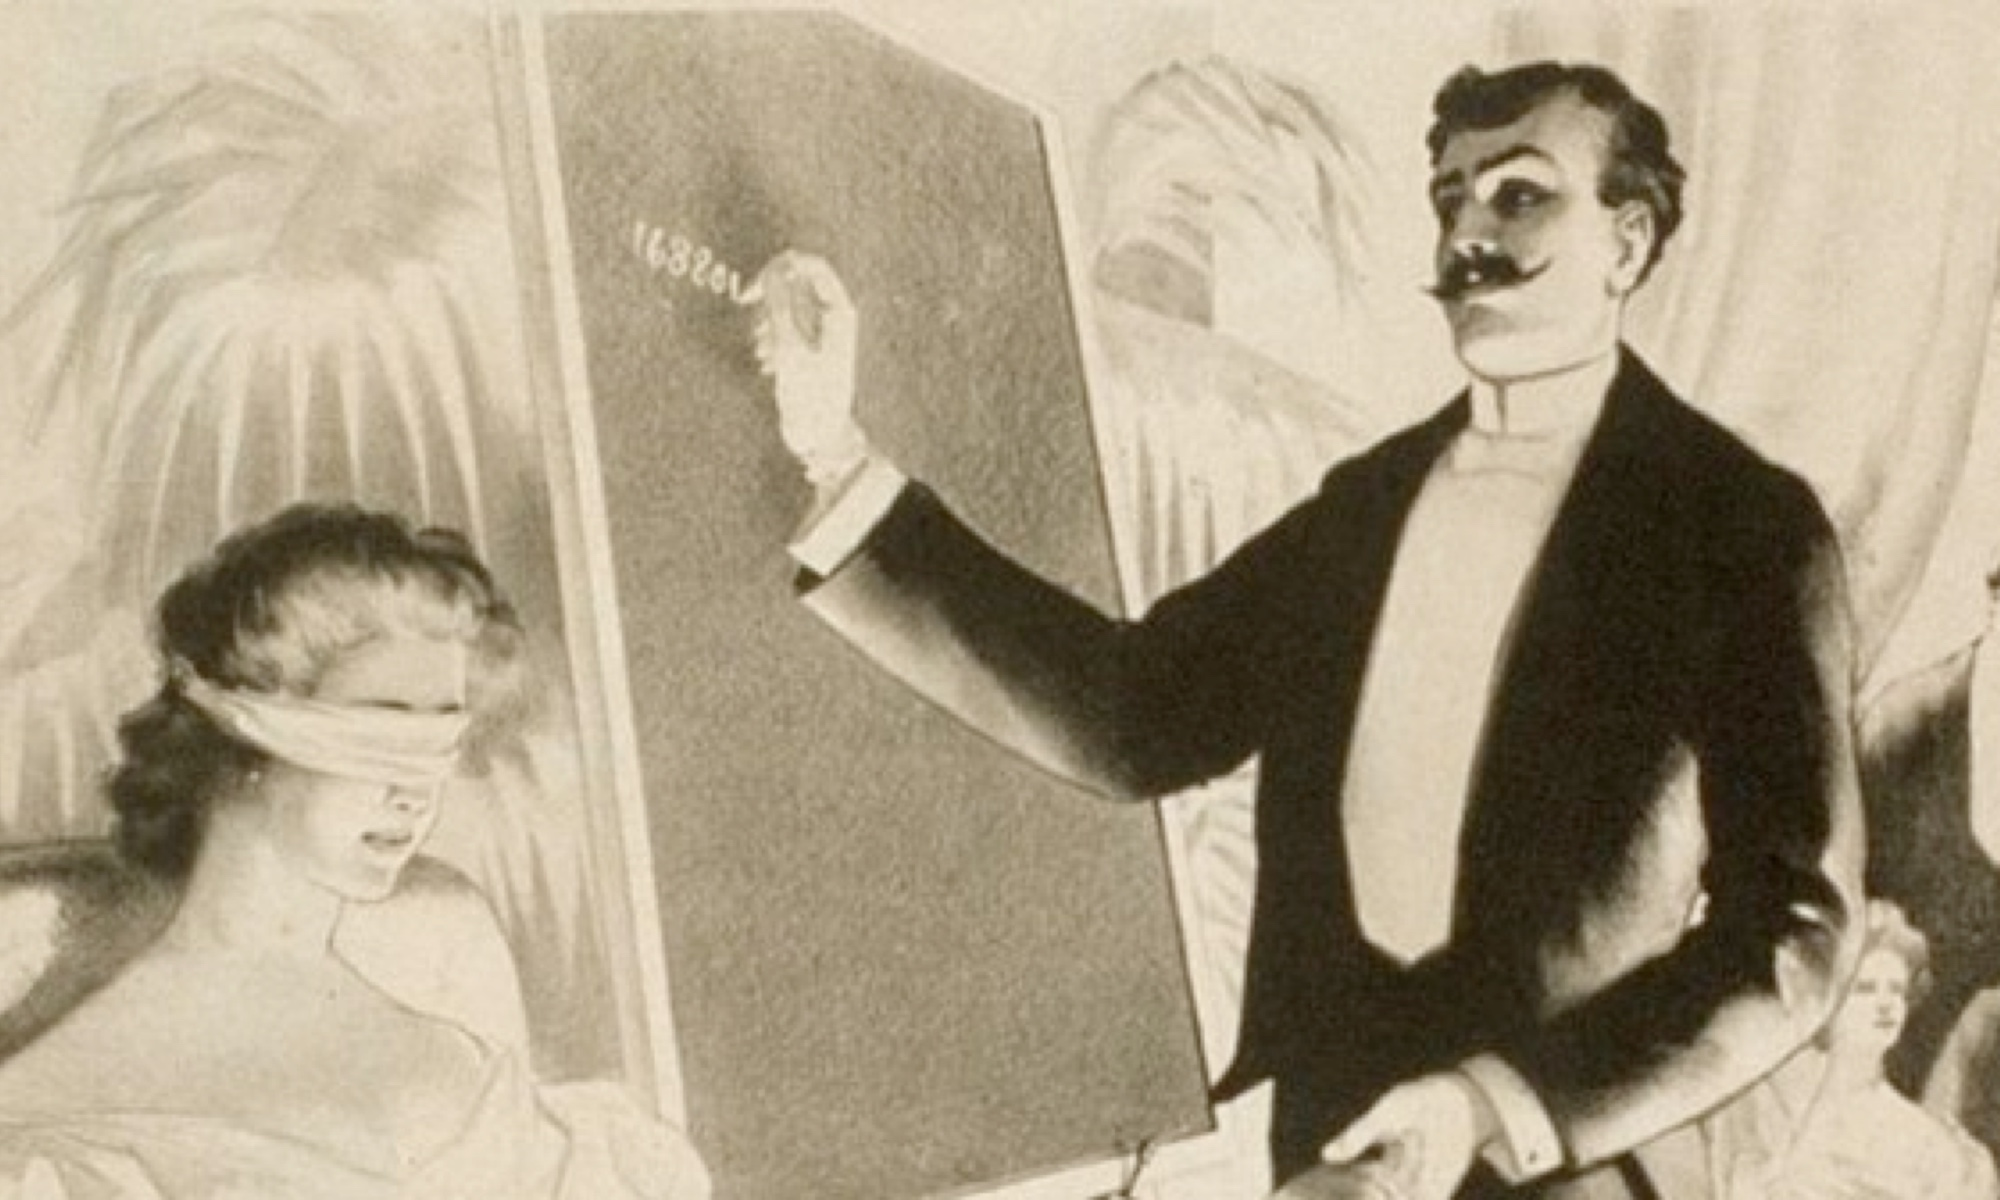 An old looking image, maybe 1920s-30s style of a man in a tuxedo reading the mind of a blindfolded woman.